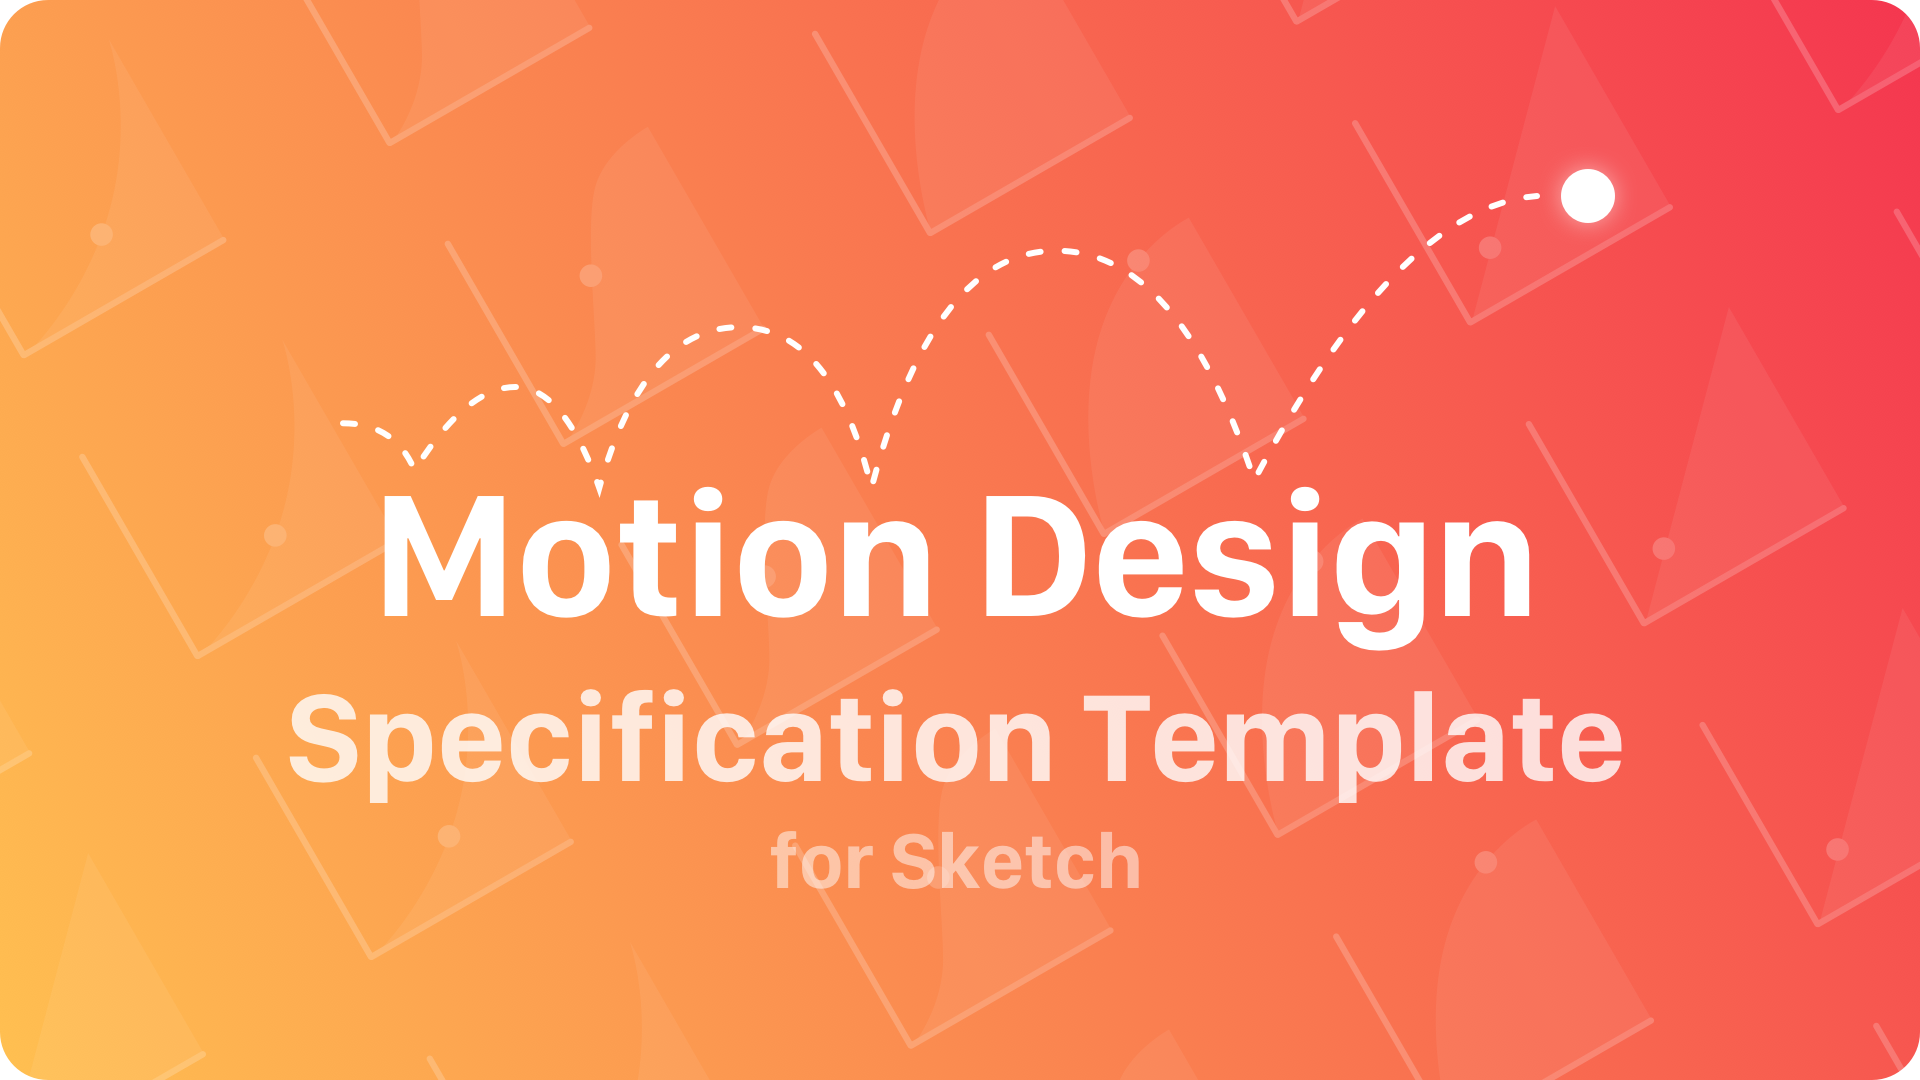 Risultati immagini per motion design specification template sketch